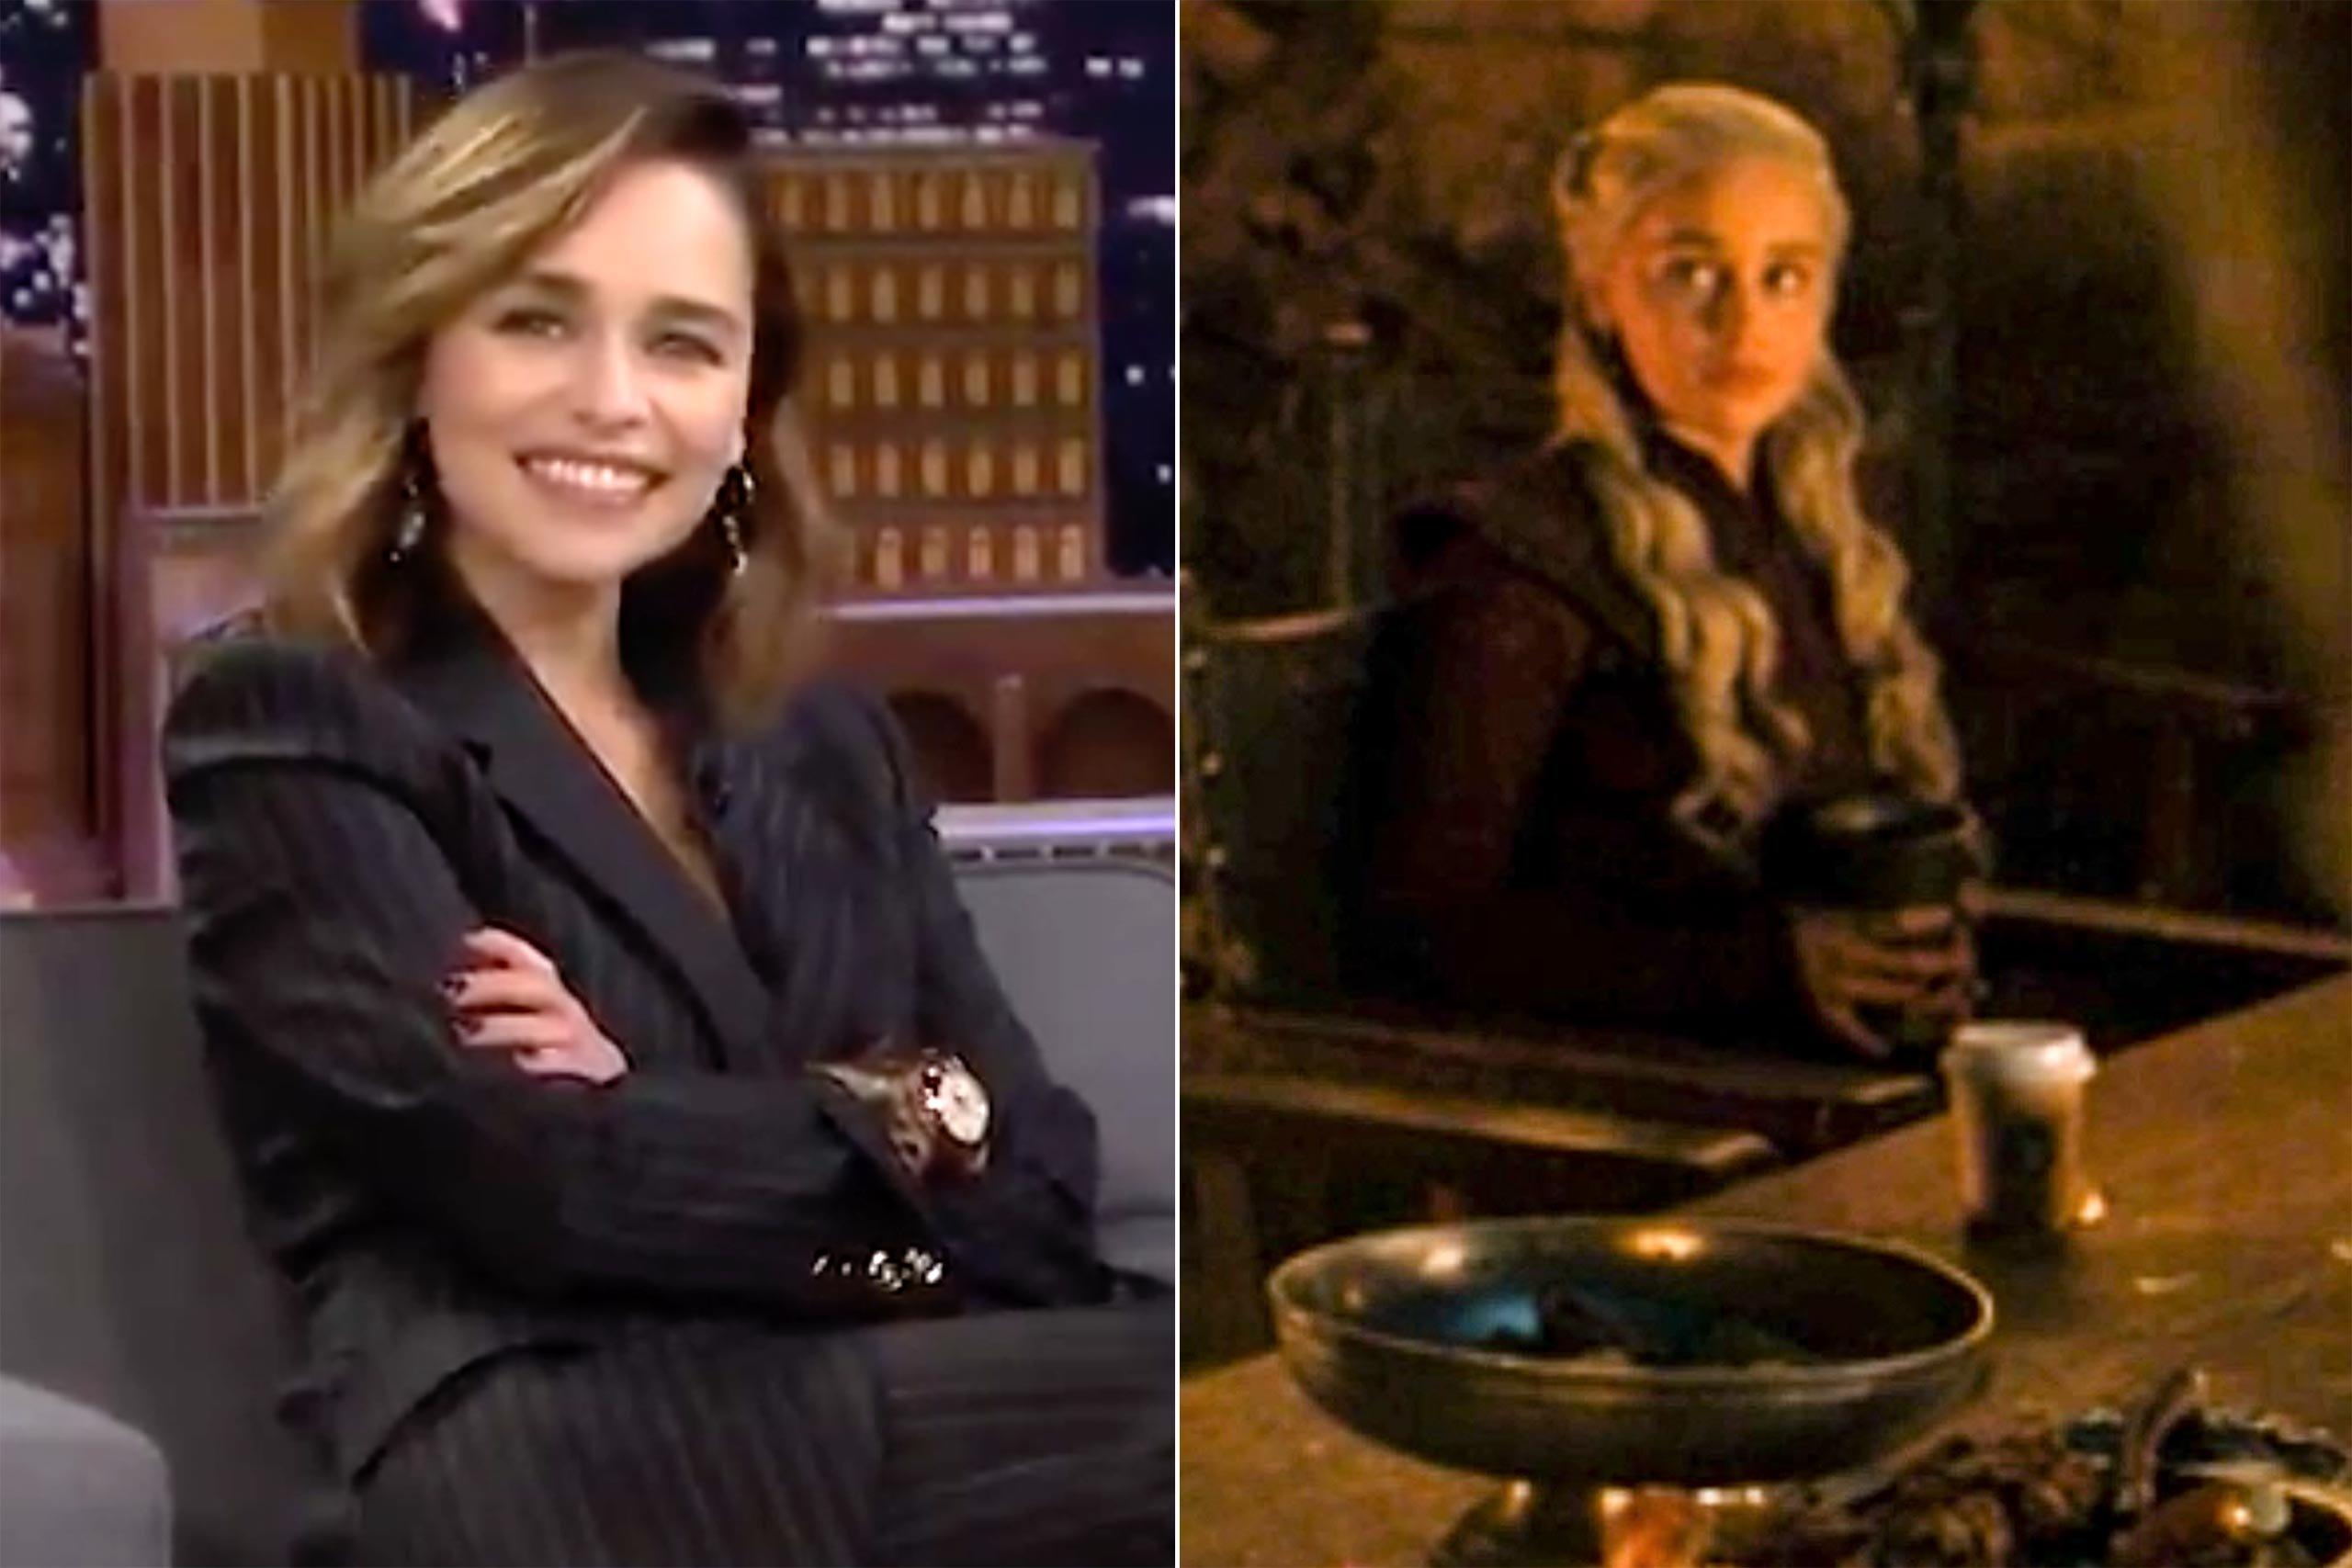 WATCH | Emilia Clarke reveals 'Game of Thrones' coffee cup